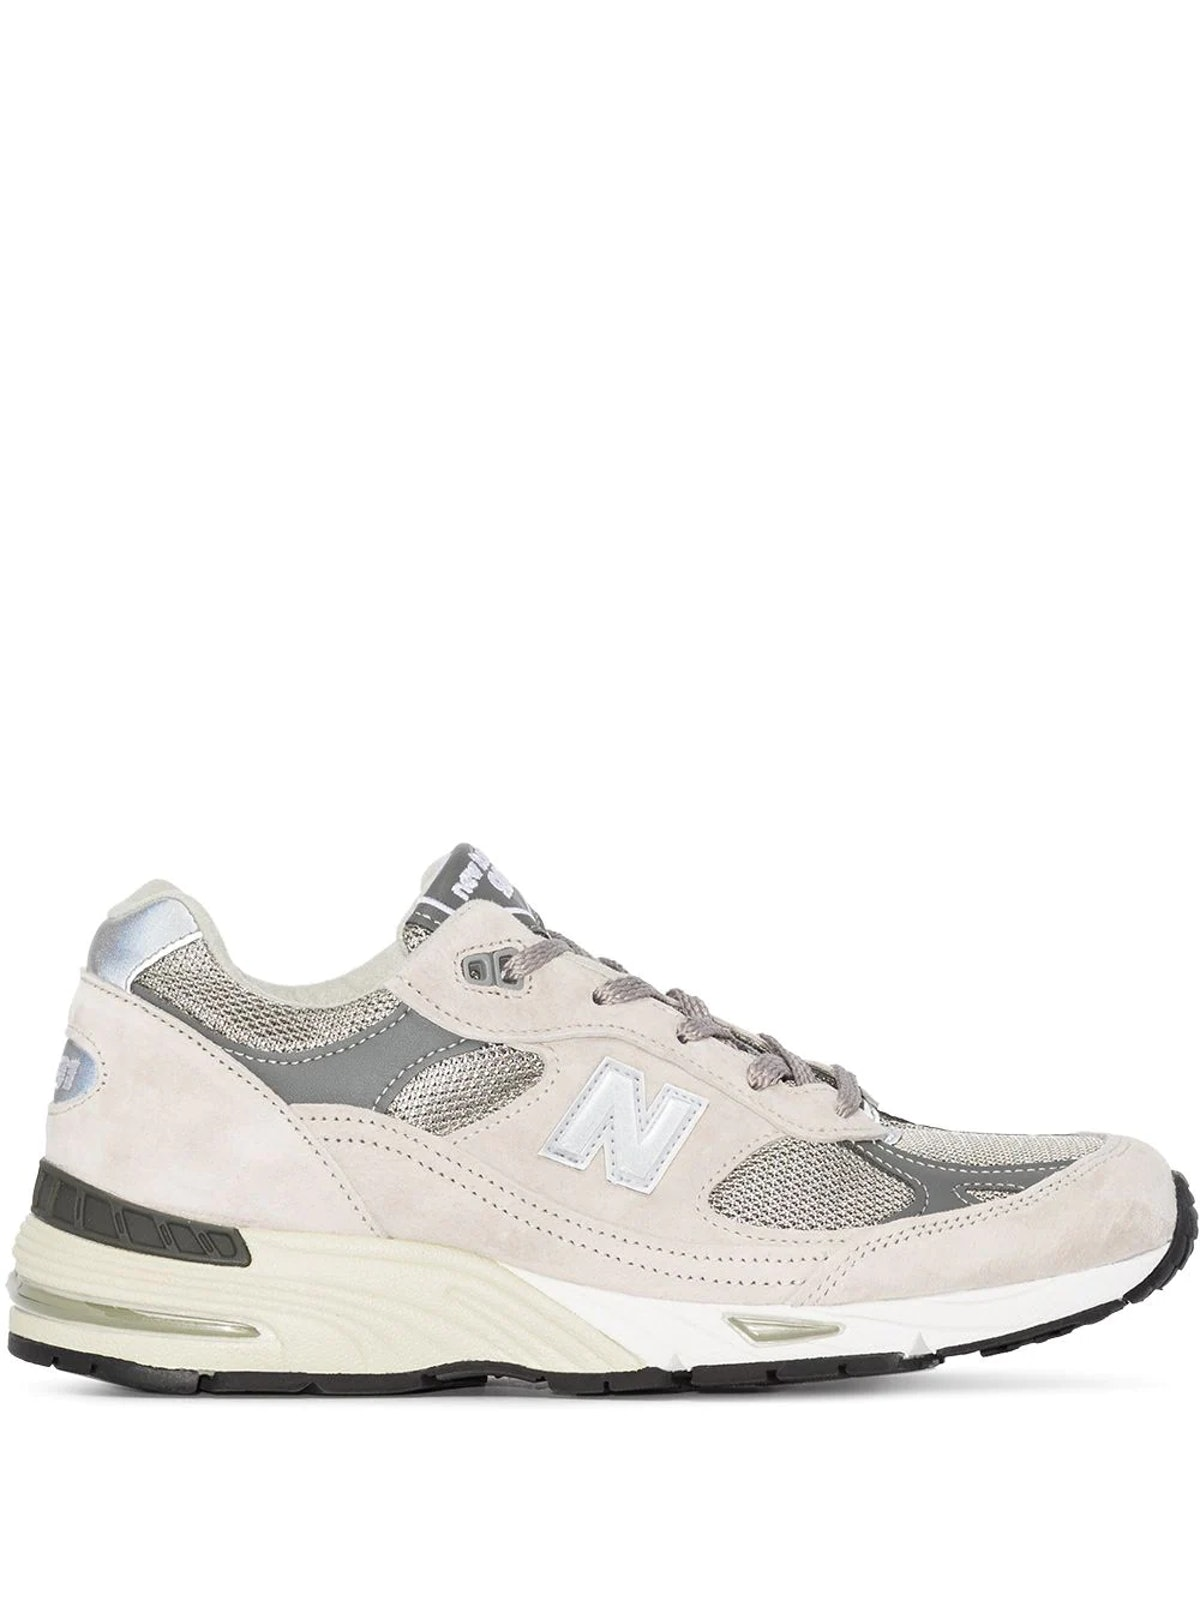 New Balance 991 Made in UK Low-Top Sneakers